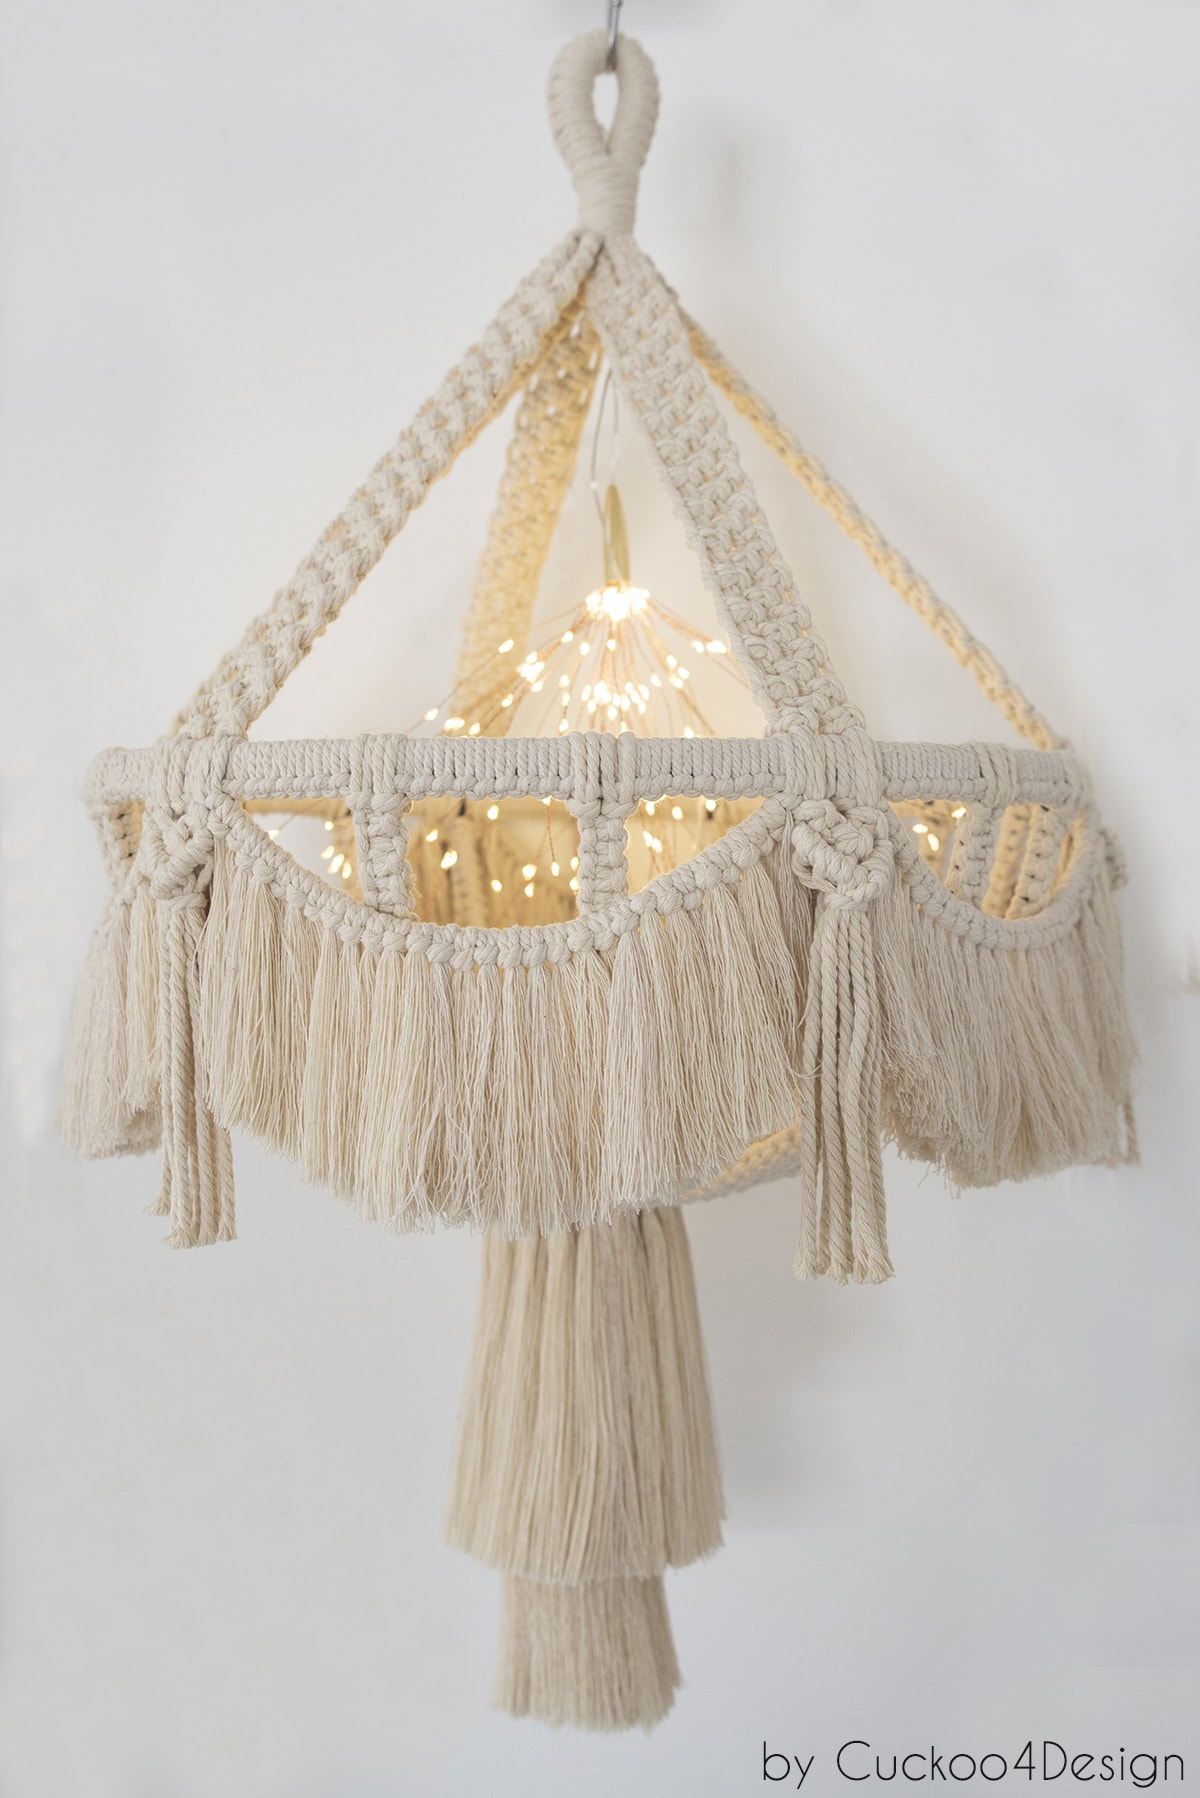 battery operated lights lit inside macrame chandelier